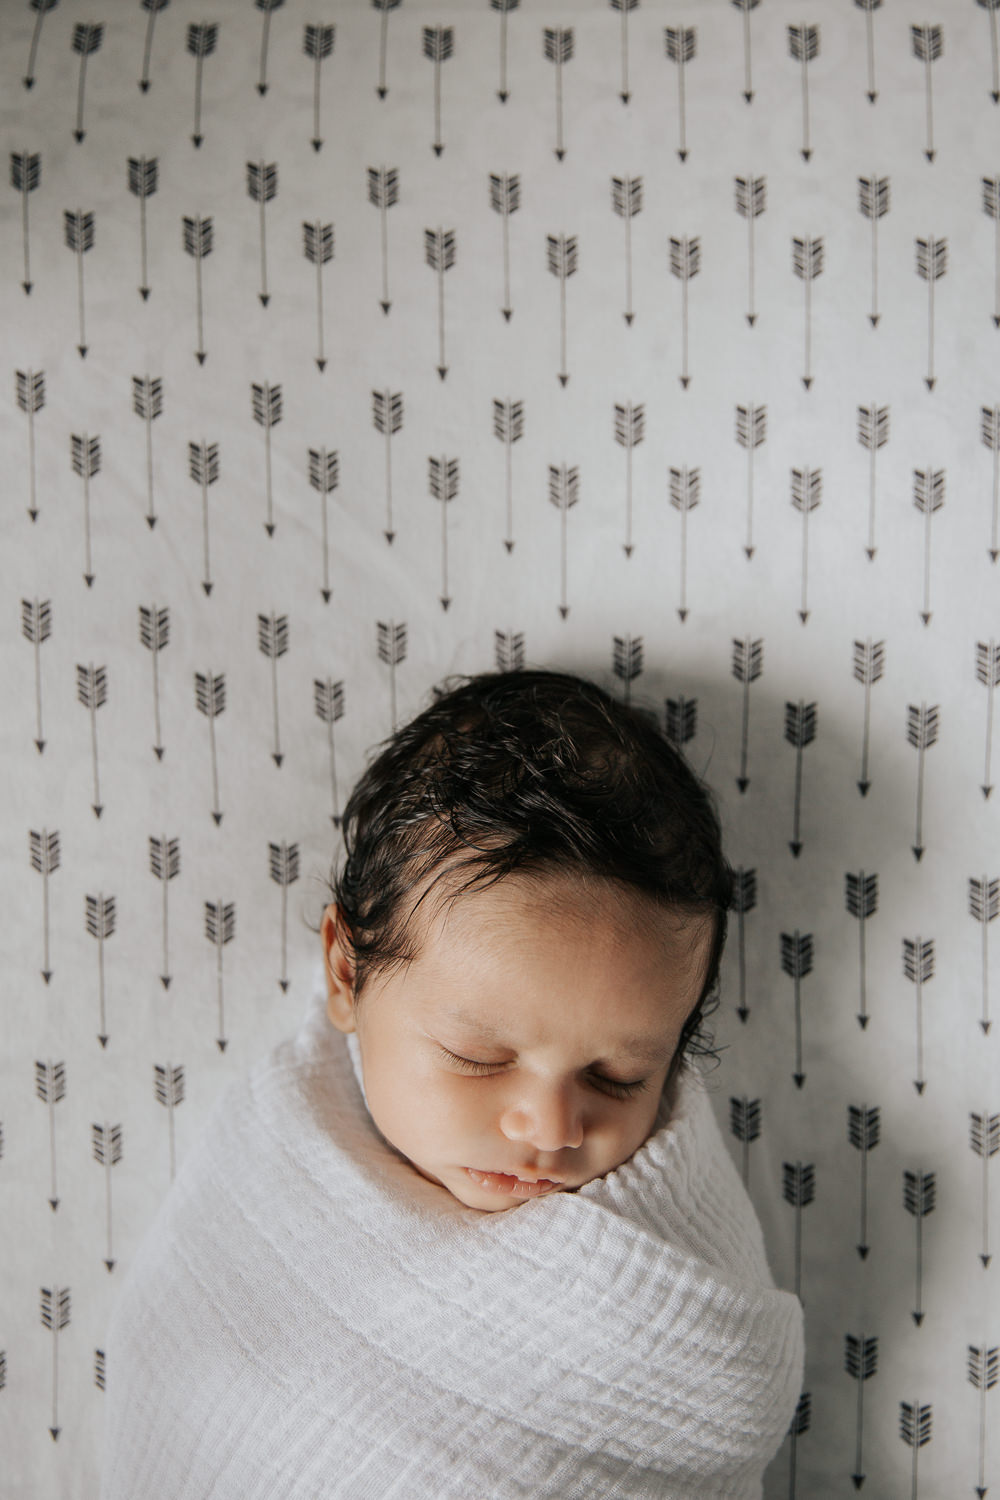 1 month old baby boy with dark hair wrapped in white swaddle lying asleep in crib on black and white arrow patterned sheet, head tilted to one side - Markham Lifestyle Photography